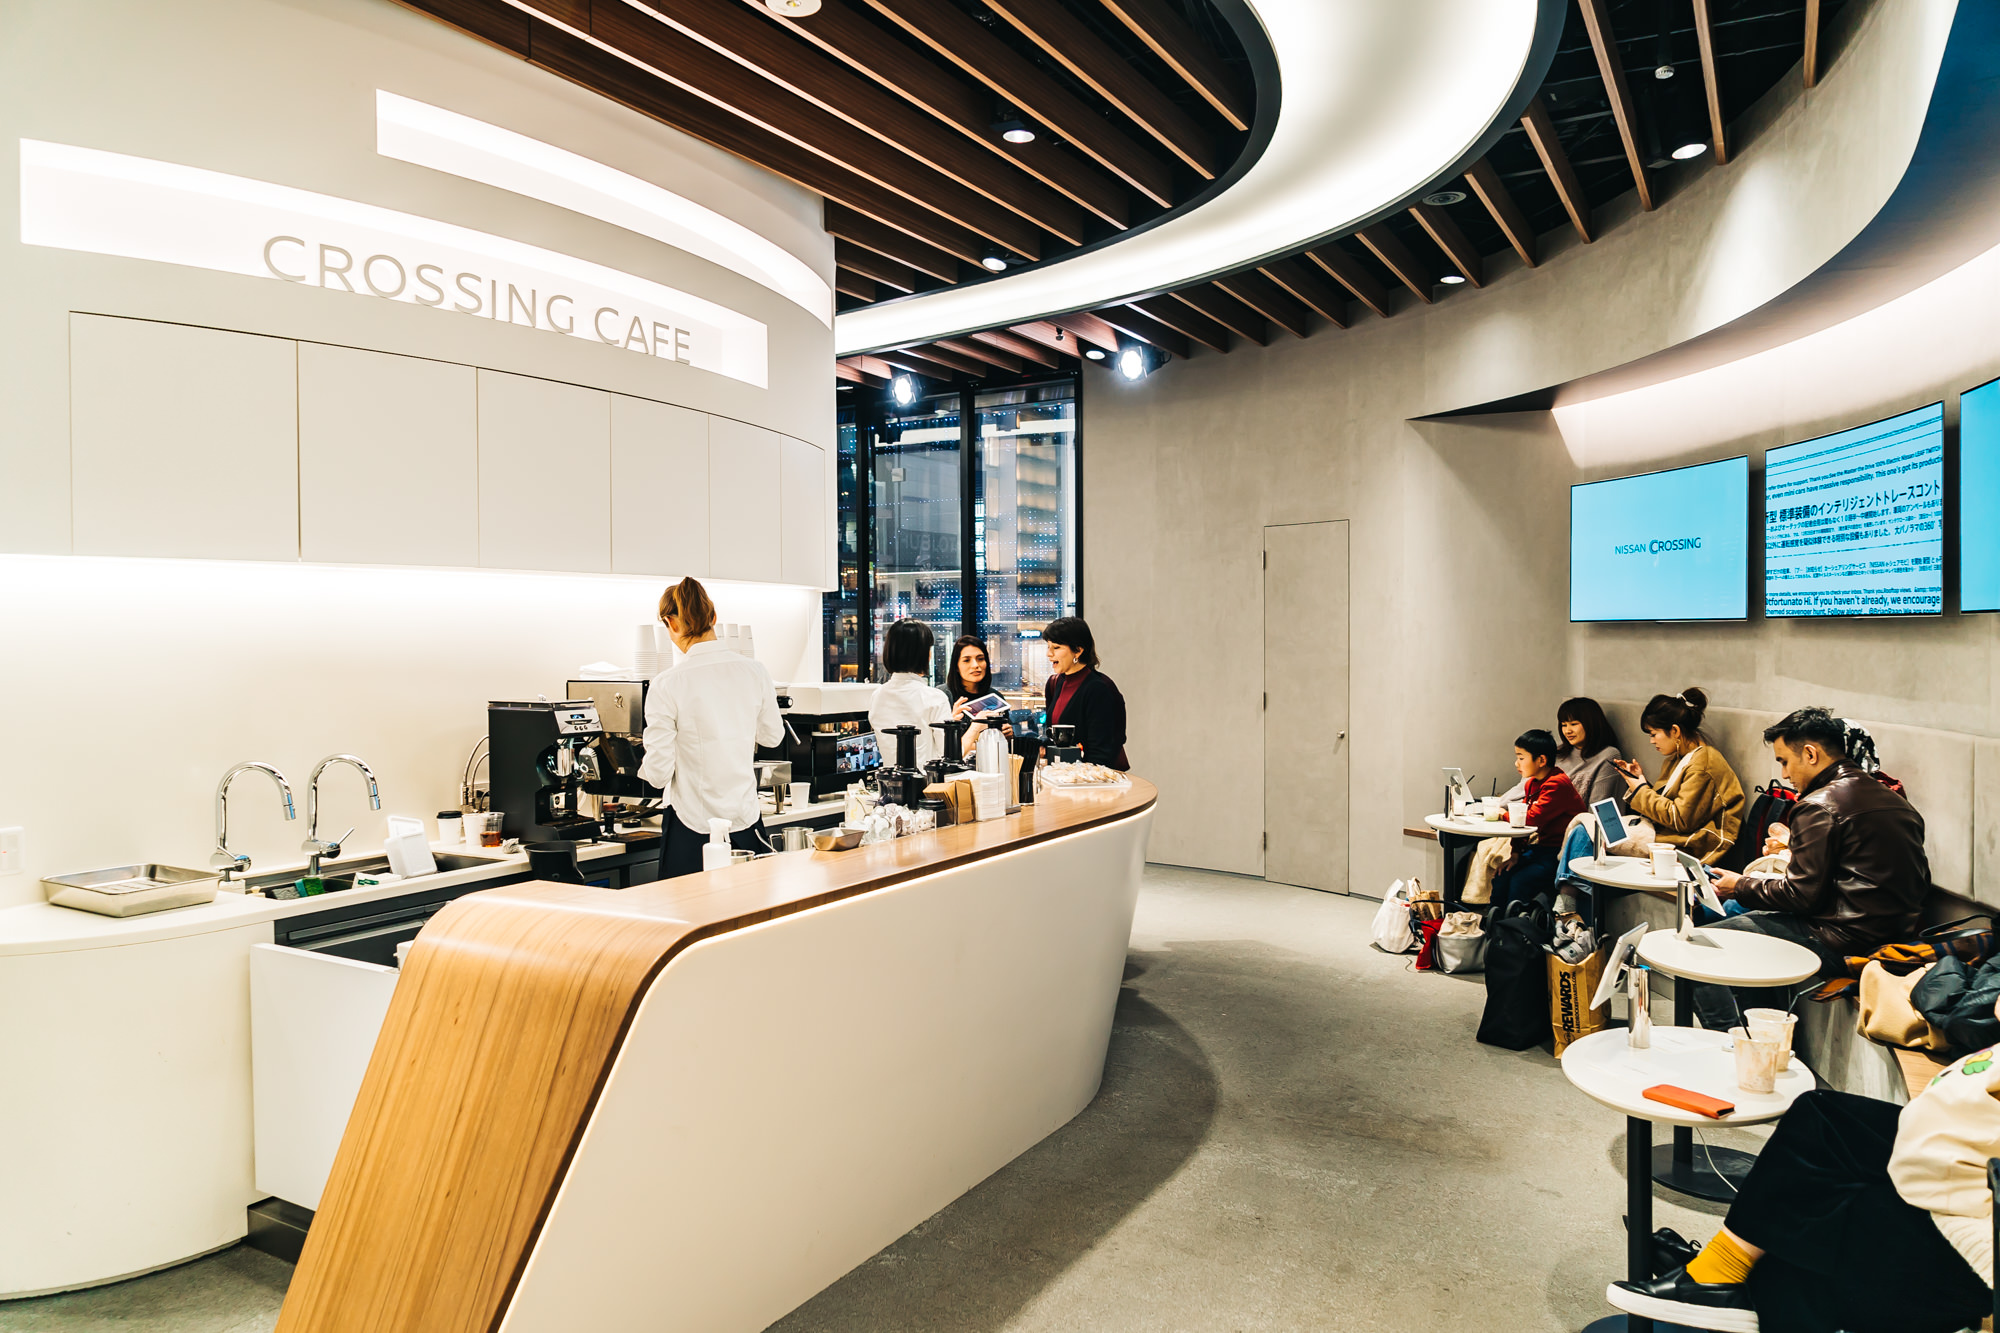 NISSAN CROSSING CAFE ON THE 2ND FLOOR